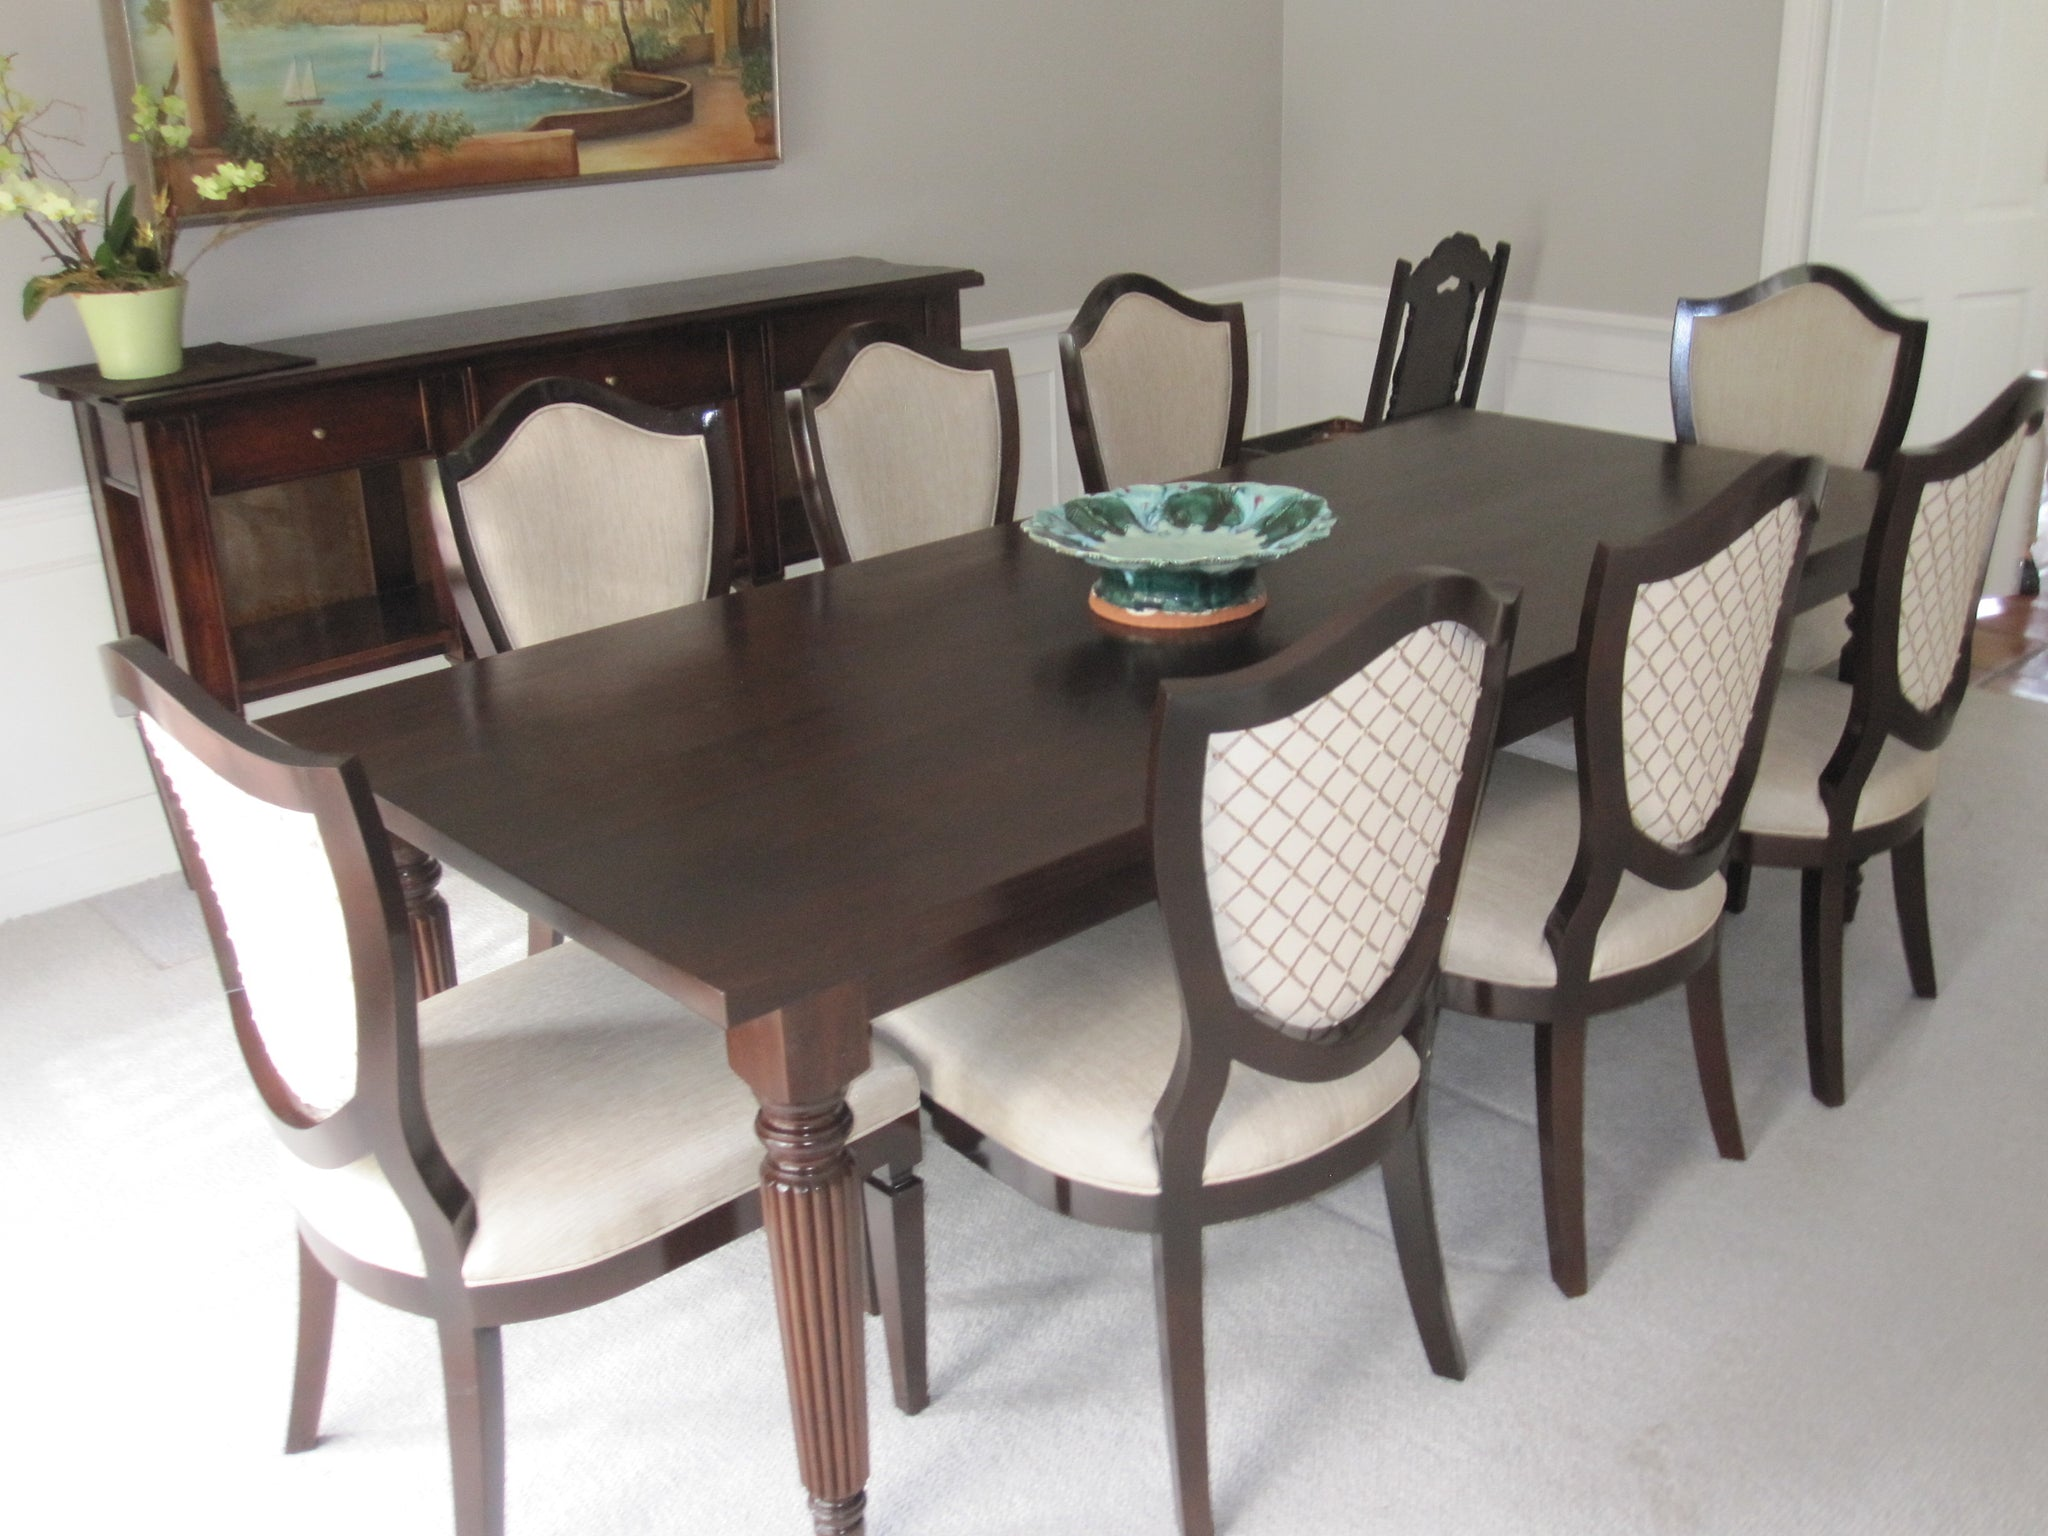 Fluted Leg Dining Table and Shield Back Chairs